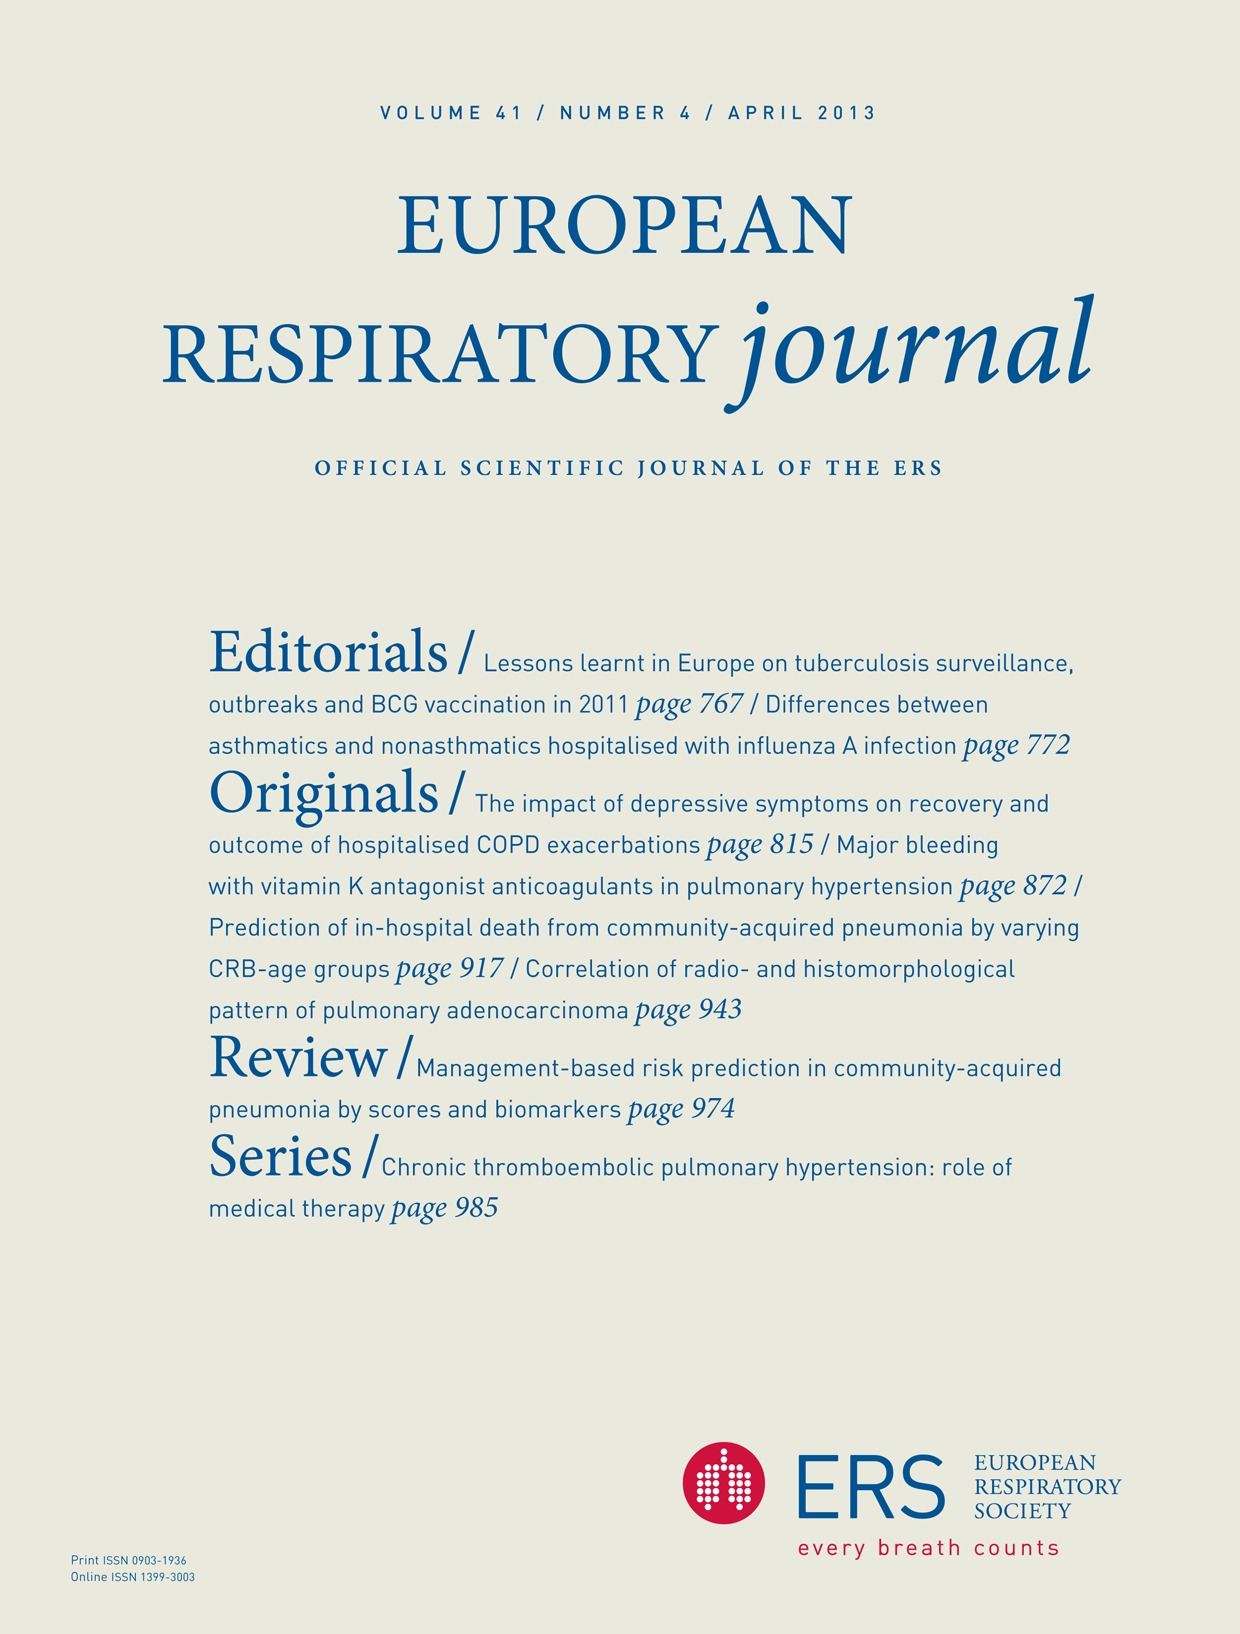 A Molecular Comparison Of Microbial Communities In Bronchiectasis And Cystic Fibrosis